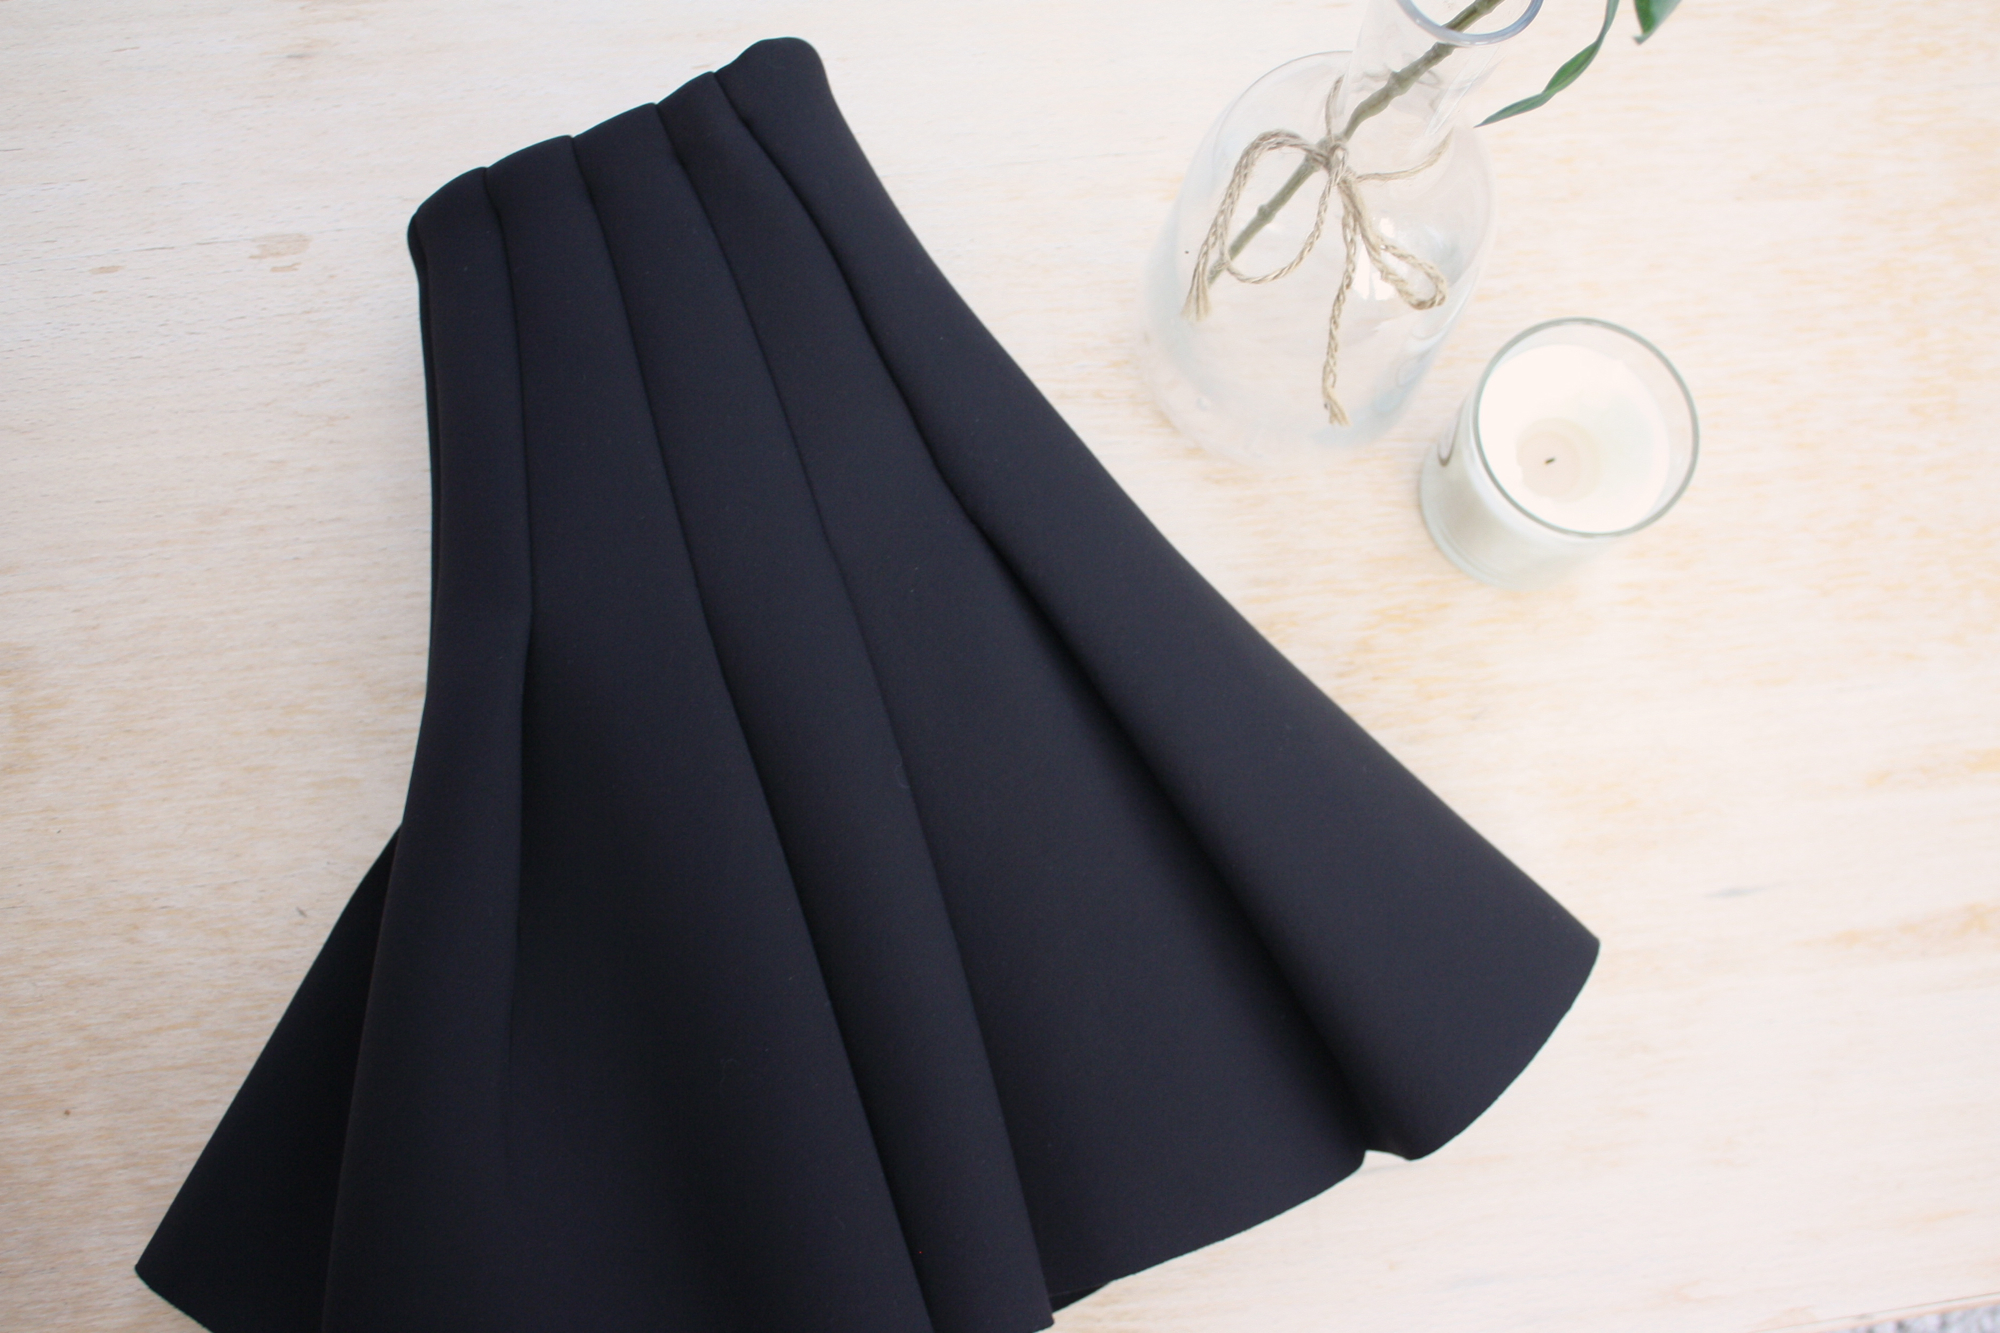 hm pleated neoprene skirt